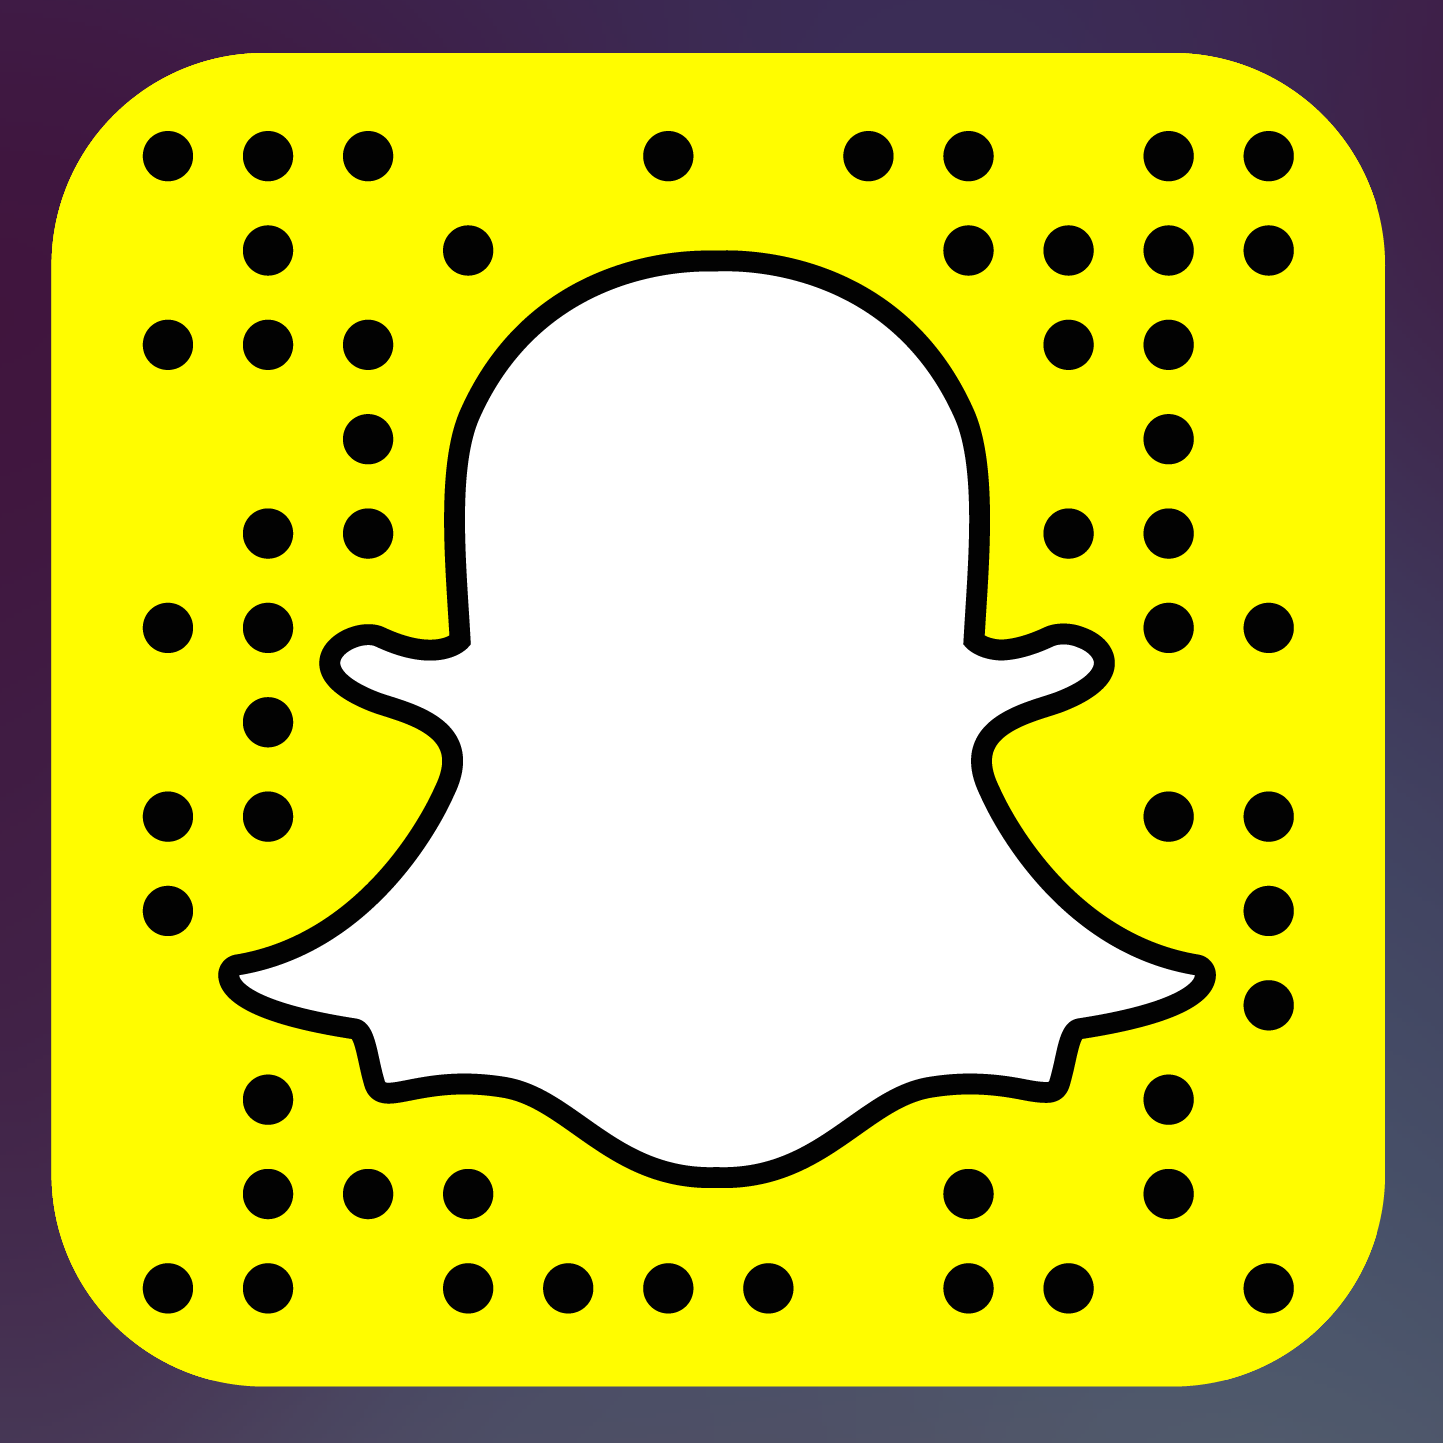 Example snap code